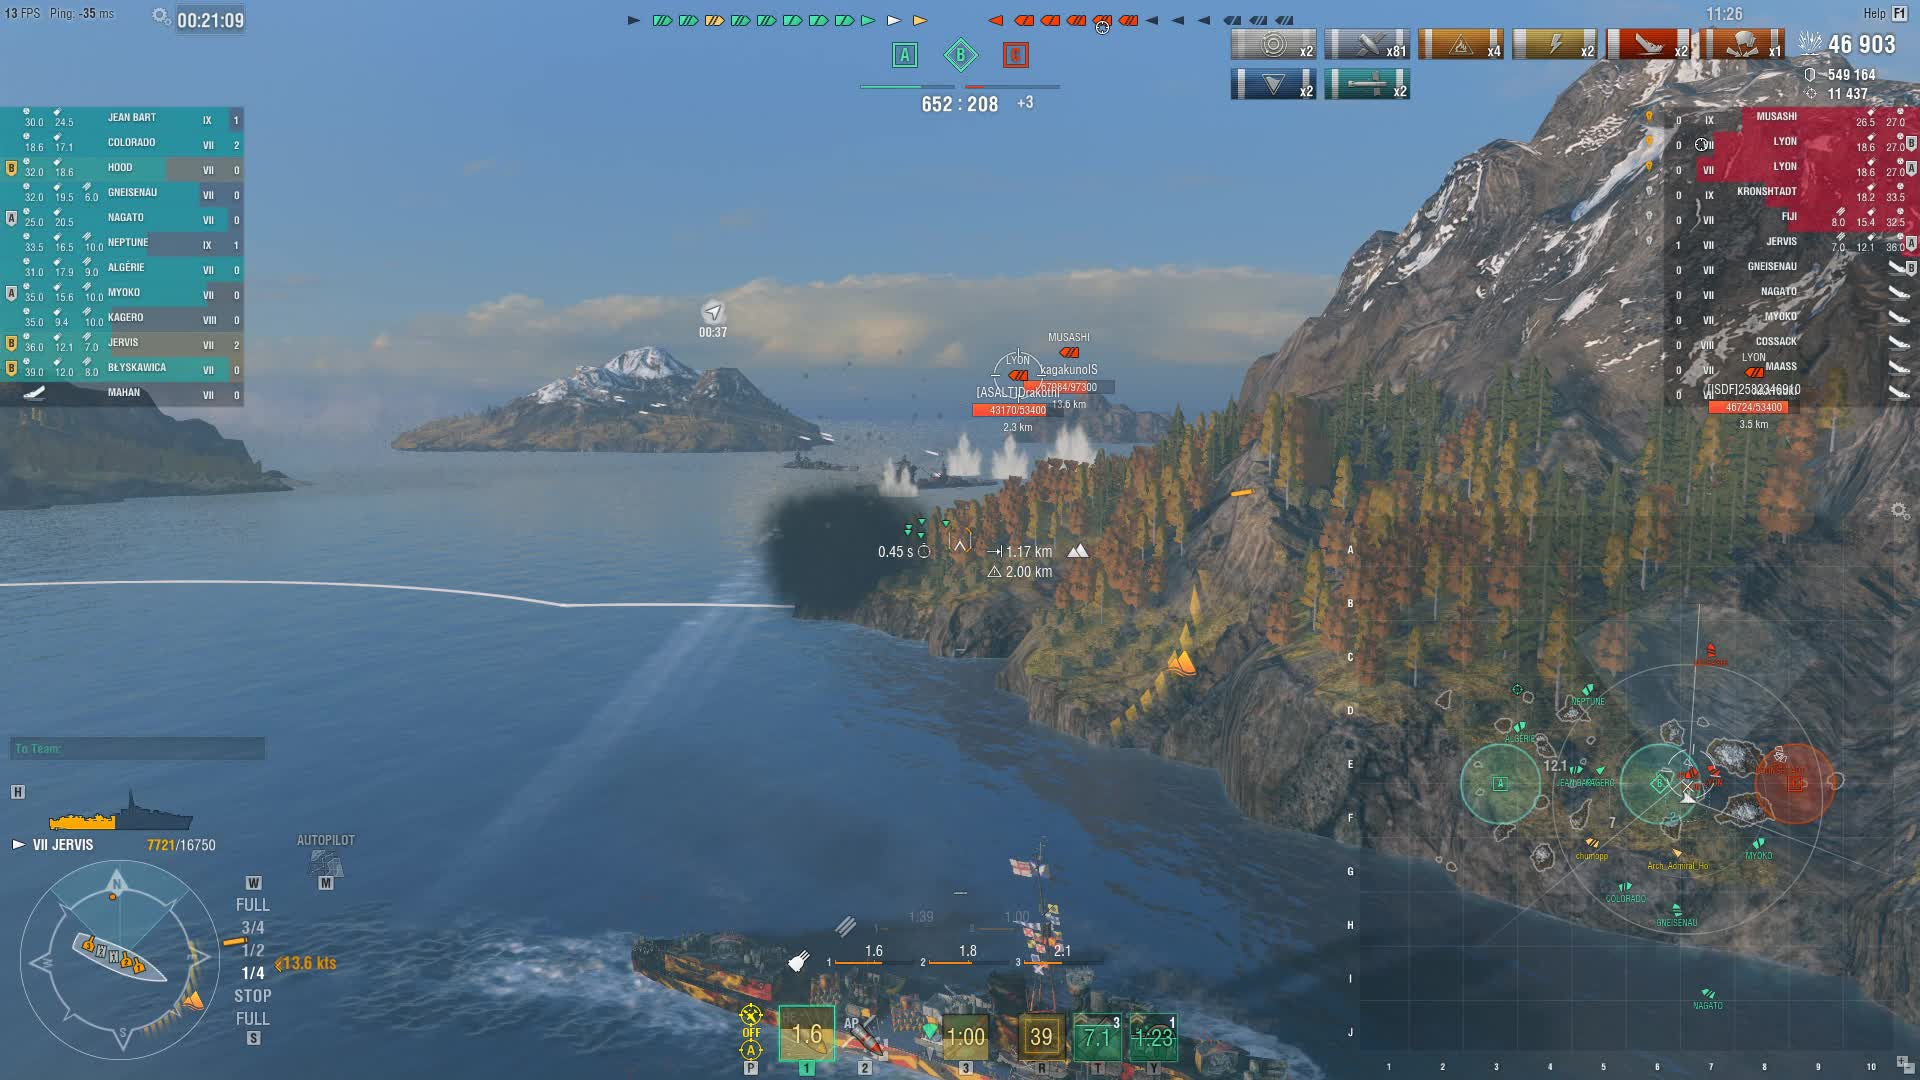 worldofwarships, World of Warships 2018.11.22 - 00.21.00.04 GIFs